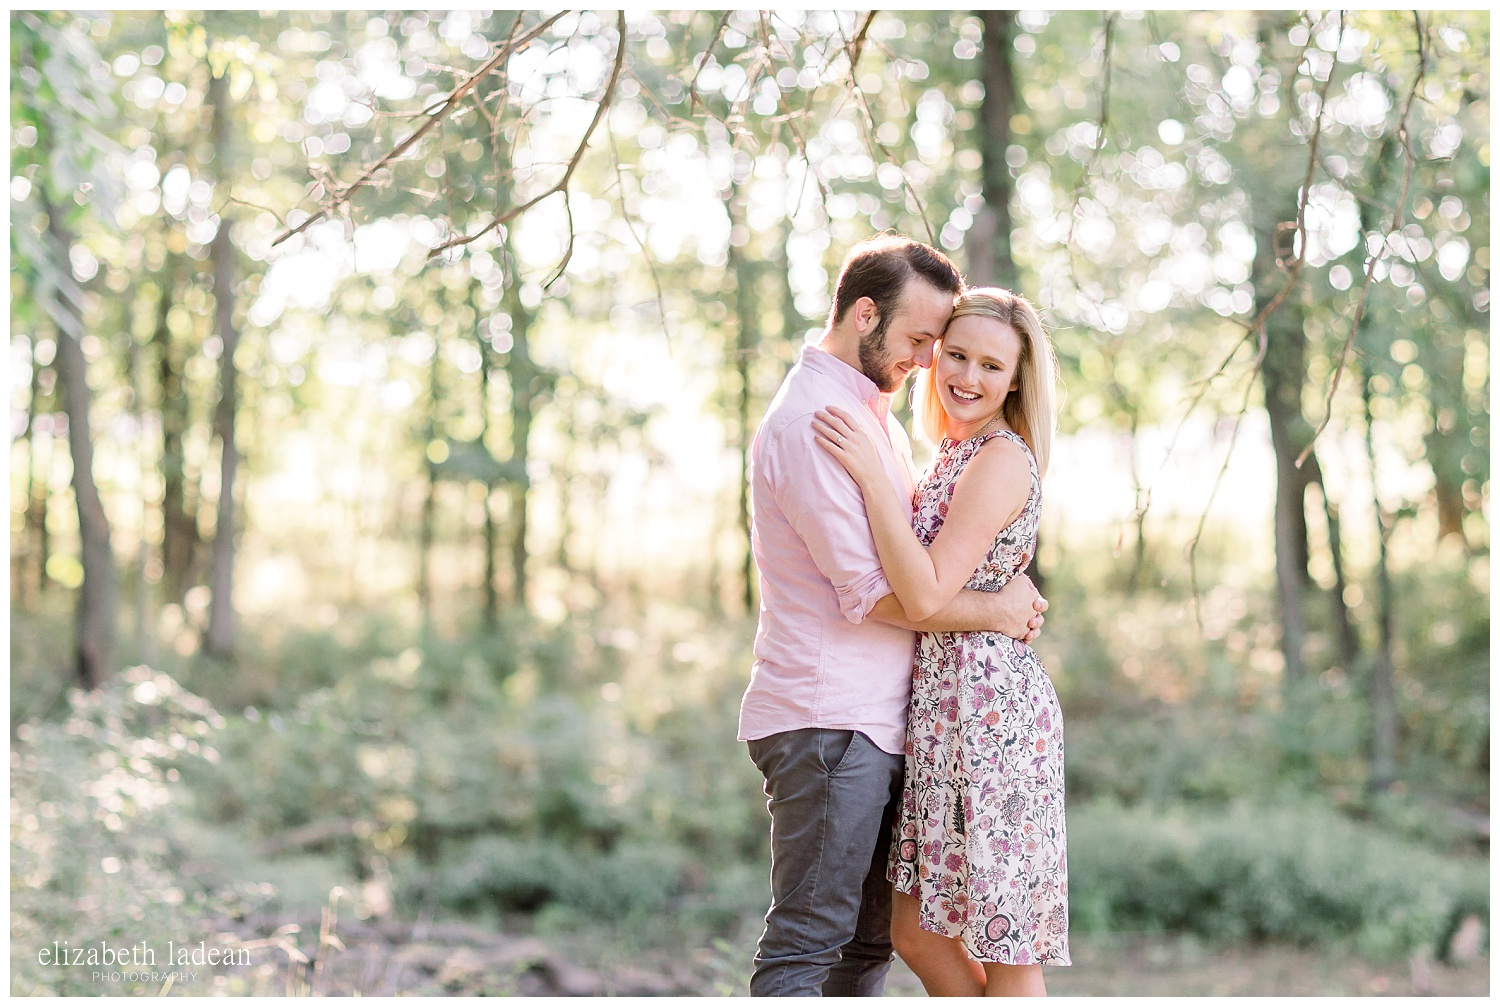 Kansas-City-Adventurous-Engagement-Photos-S+C2018-elizabeth-ladean-photography-photo_0369.jpg